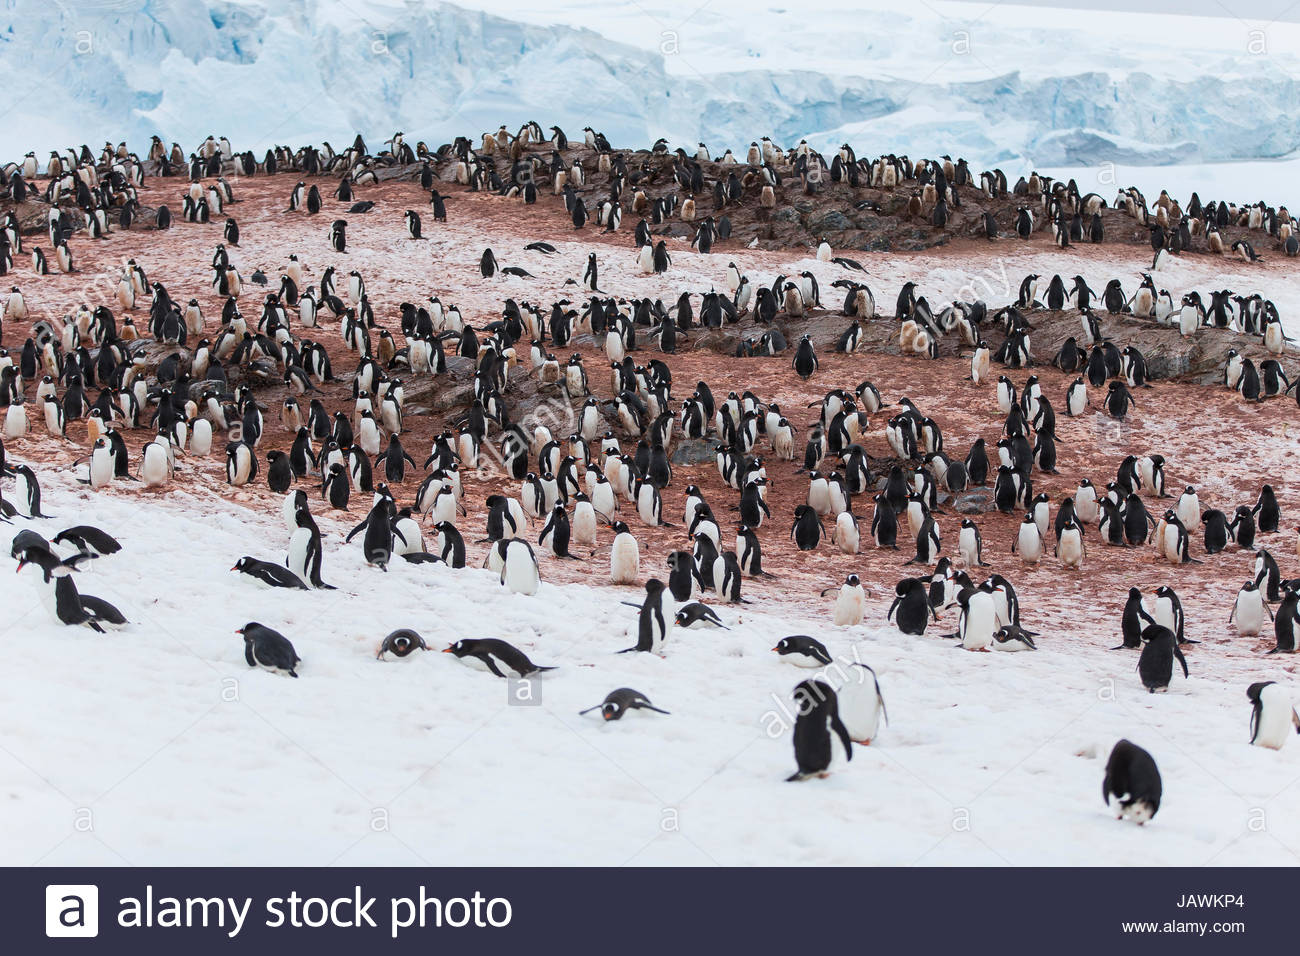 Colony of penguins on Couverville Island. - Stock Image